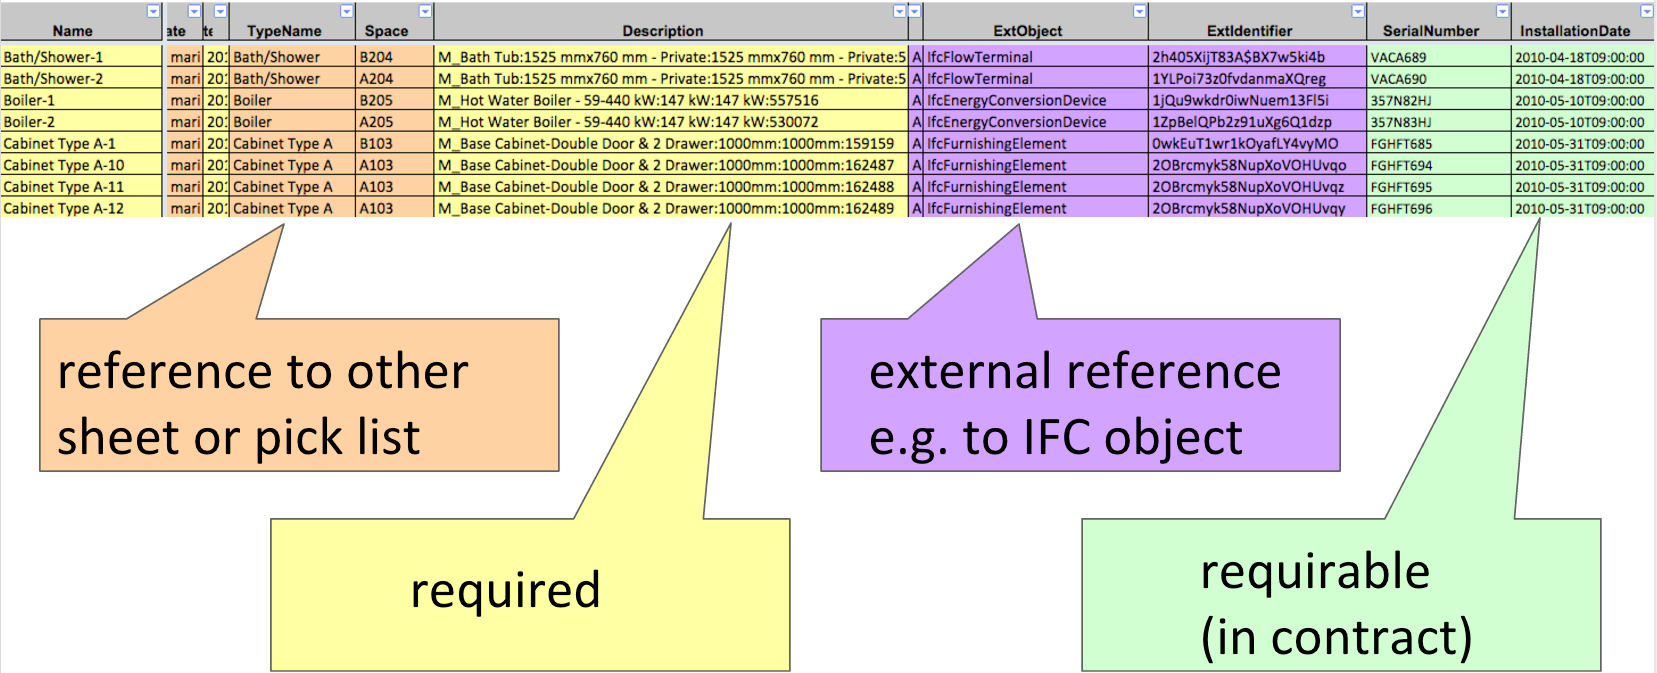 COBie spreadsheet required properties and external references